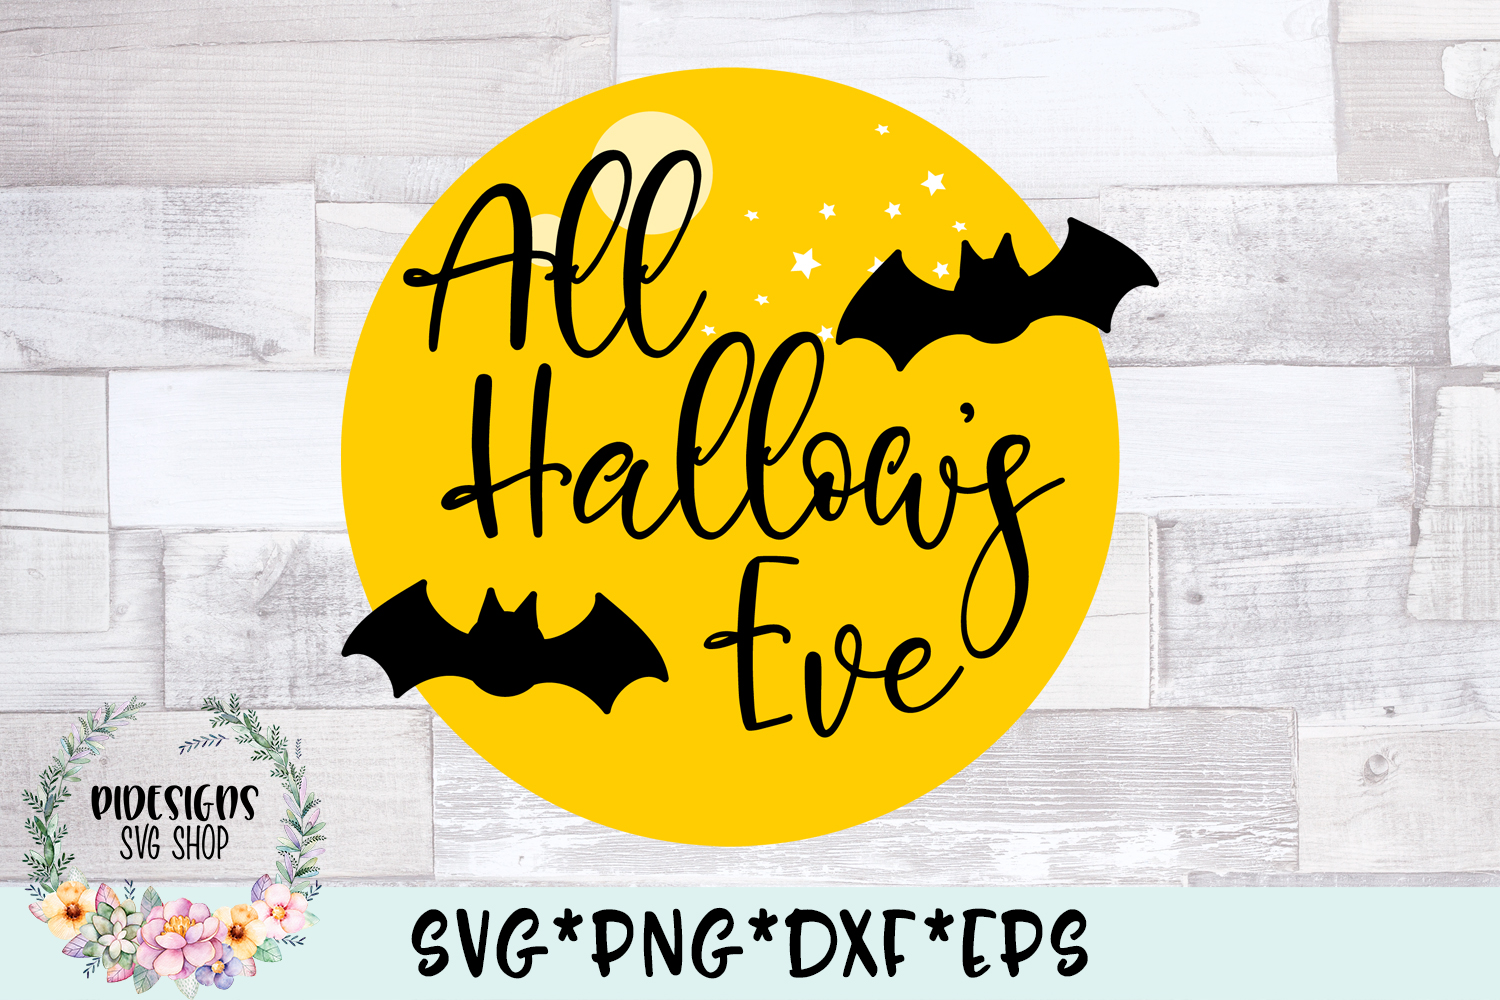 All Hallow's Eve Halloween Frame SVG Cut File example image 2